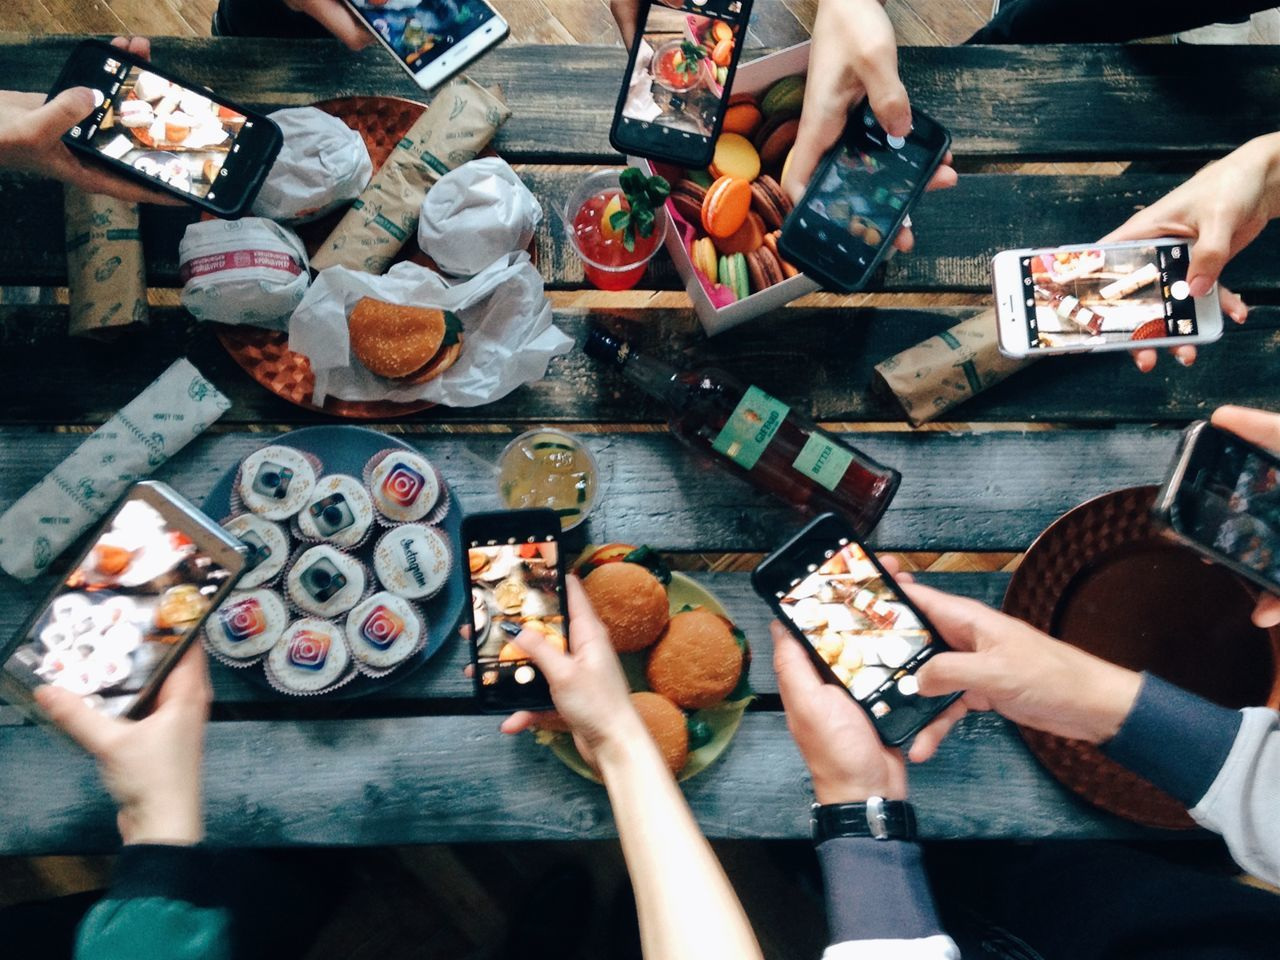 People using mobile devices Human Hand Real People Food And Drink High Angle View Food Human Body Part Table People Using Laptop Mobile Phone Technology Using Phone Using My Mobile Bloger Burgers Food And Drink